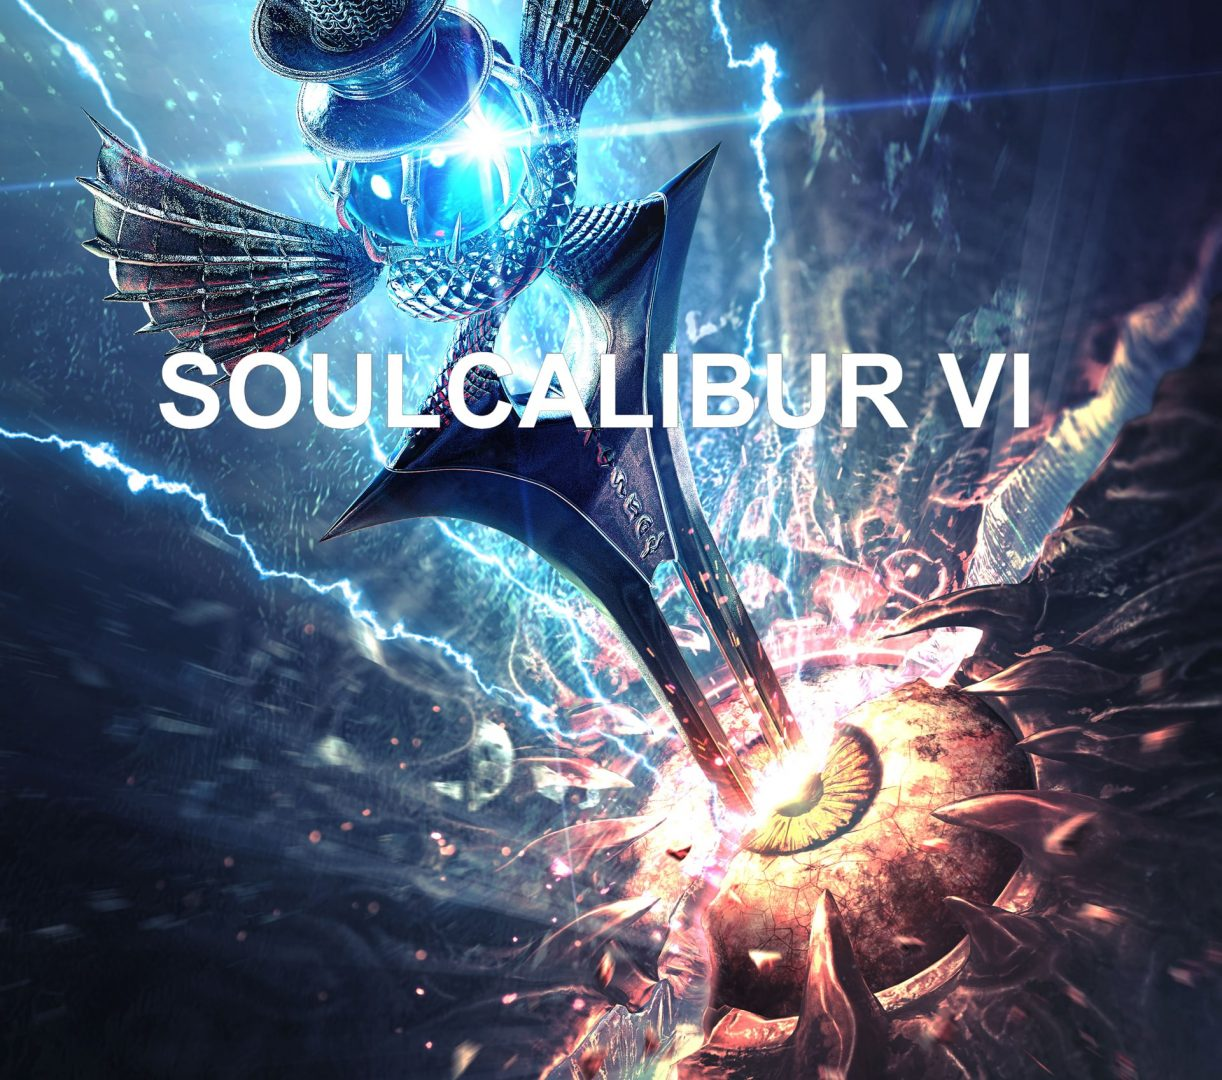 SOULCALIBUR VI Story Mode Revealed and First DLC Character